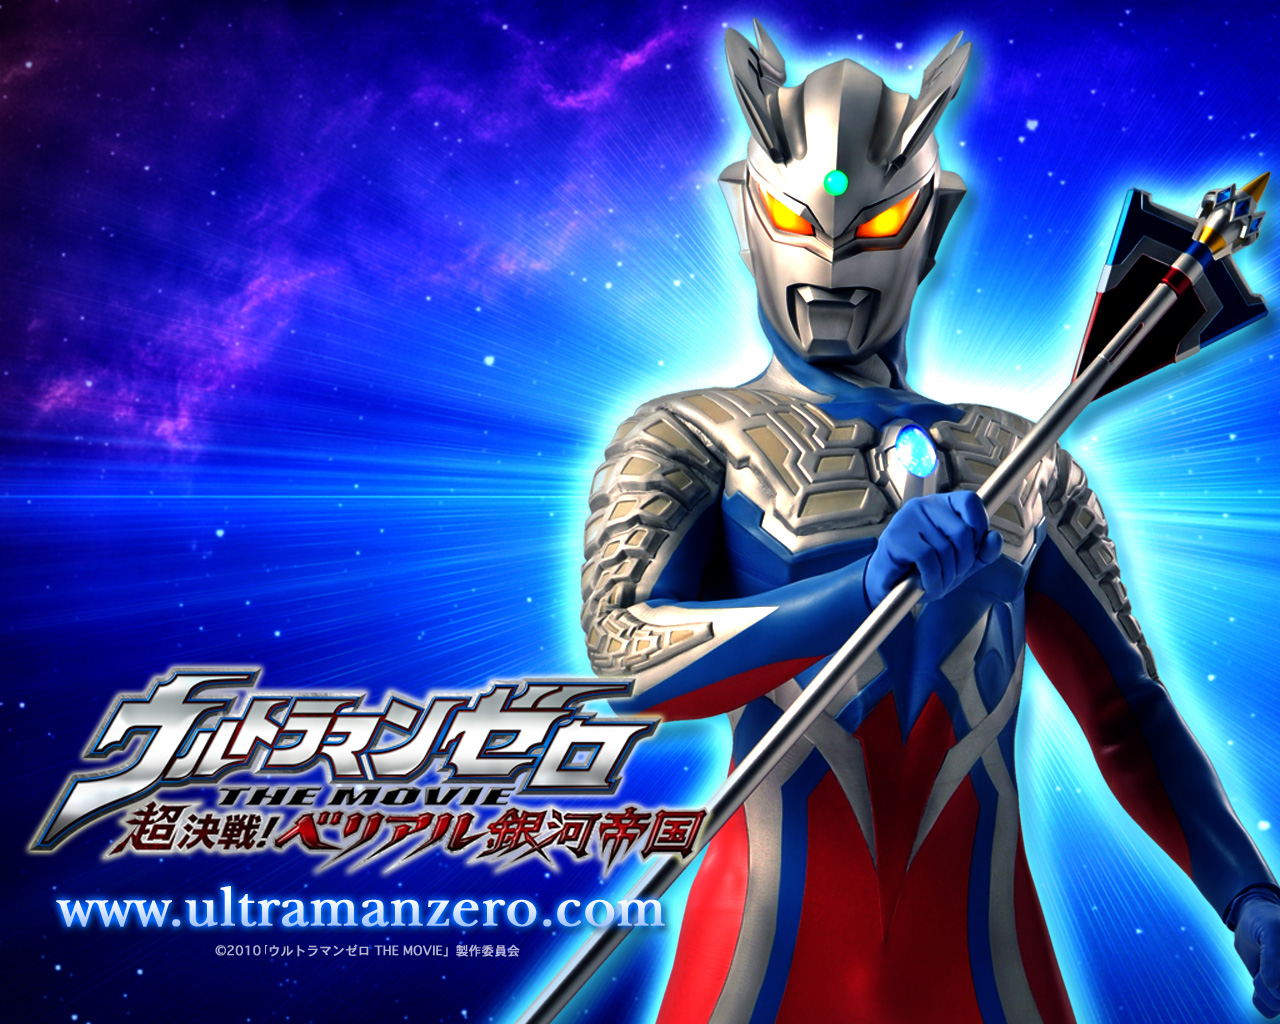 Tags: Anime, Ultraman, Ultraman Zero Series, Ultraman Zero